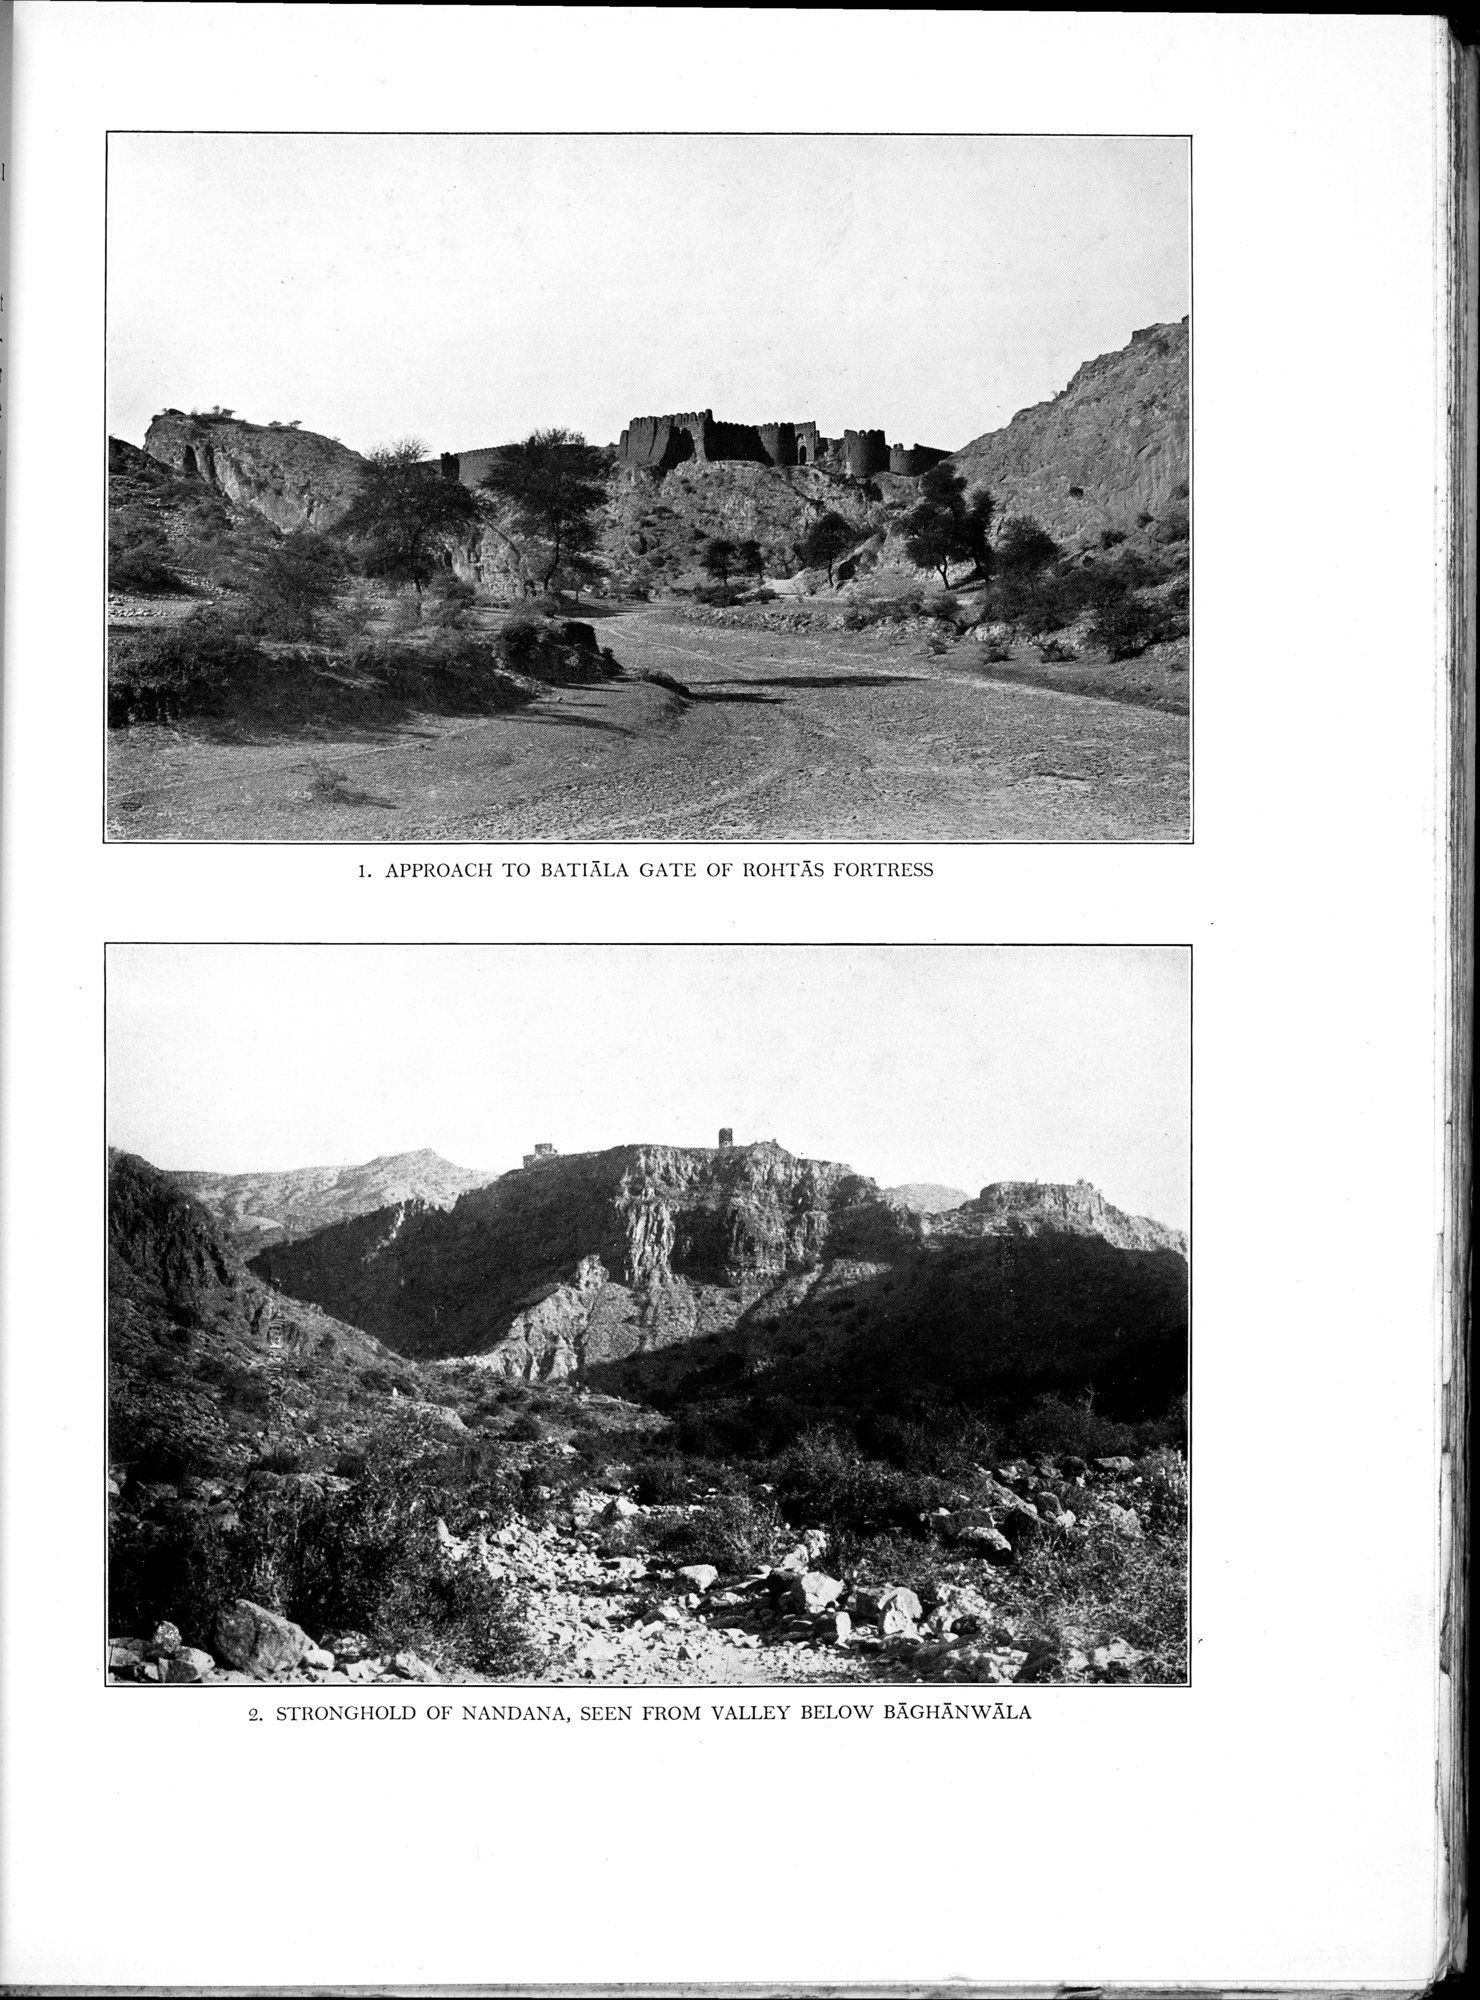 Archaeological Reconnaissances in North-Western India and South-Eastern Īrān : vol.1 / Page 51 (Grayscale High Resolution Image)